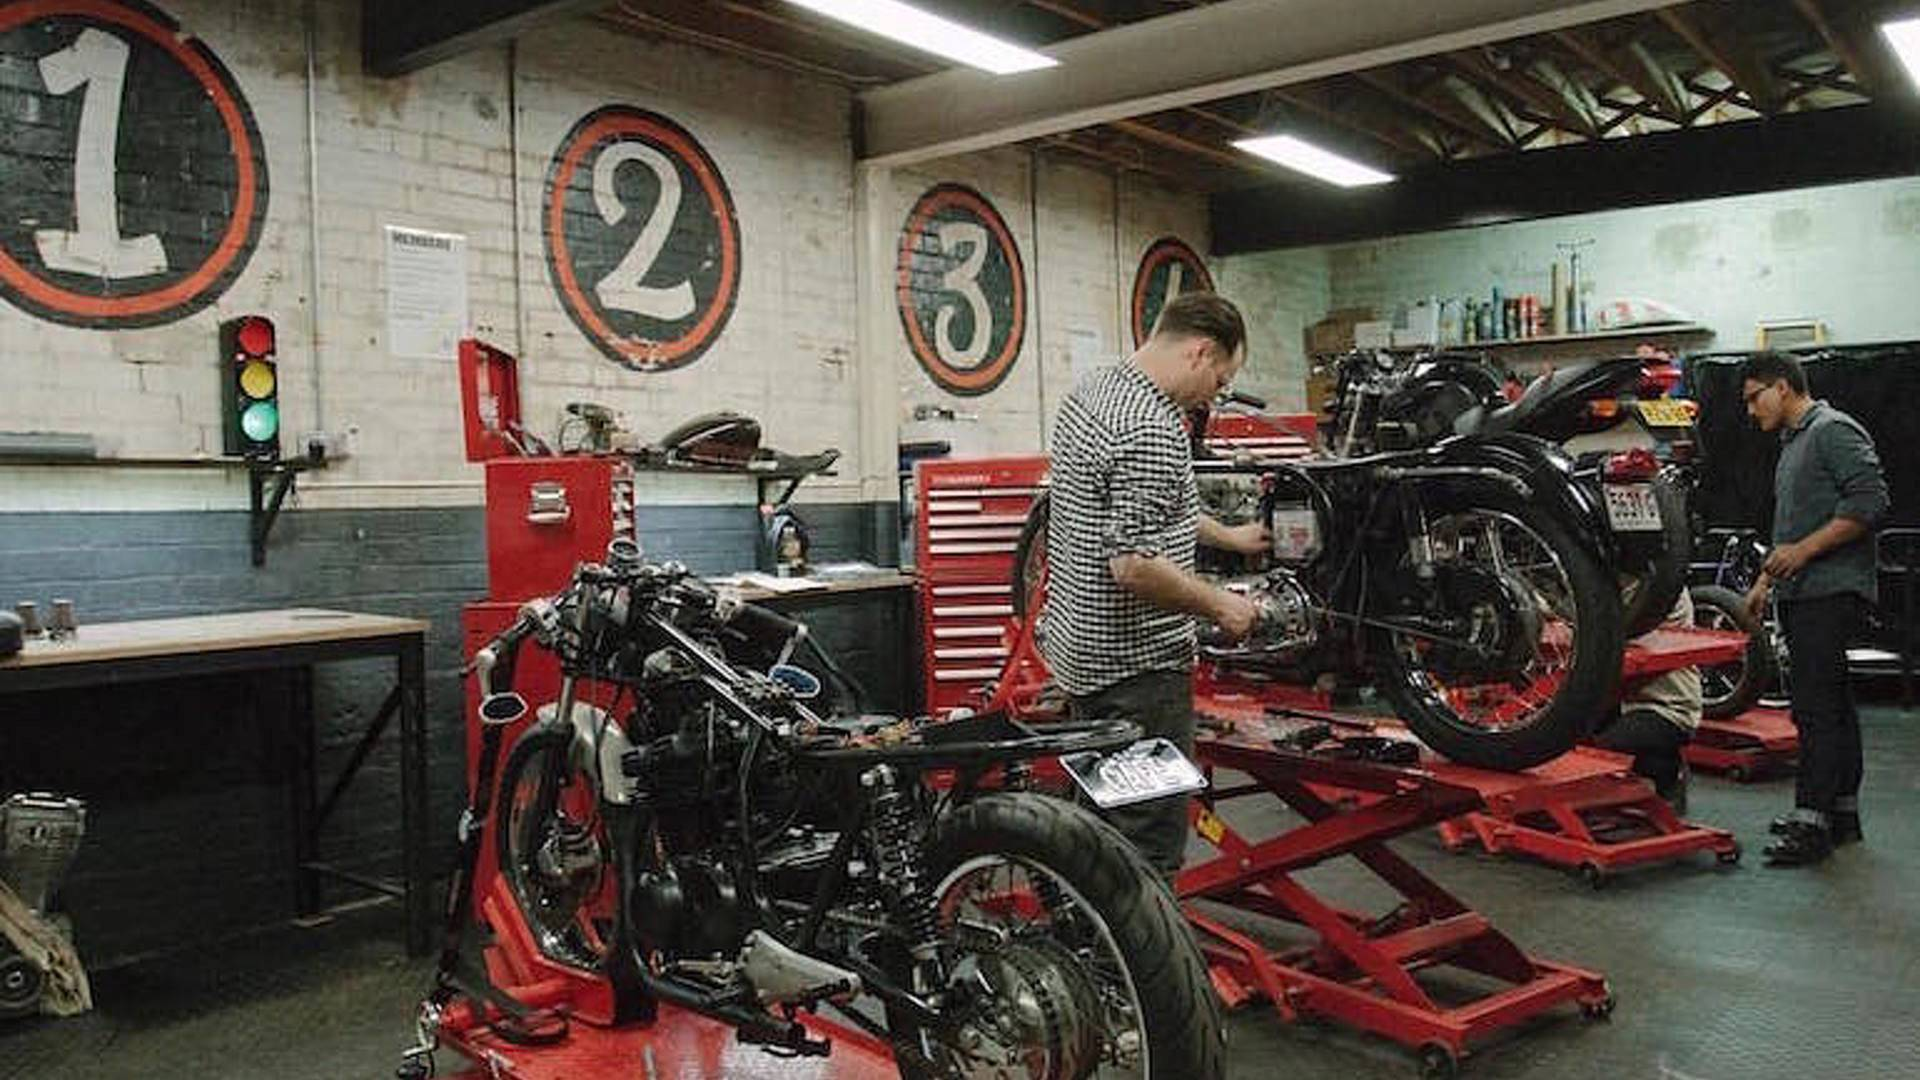 motorcycle check-up